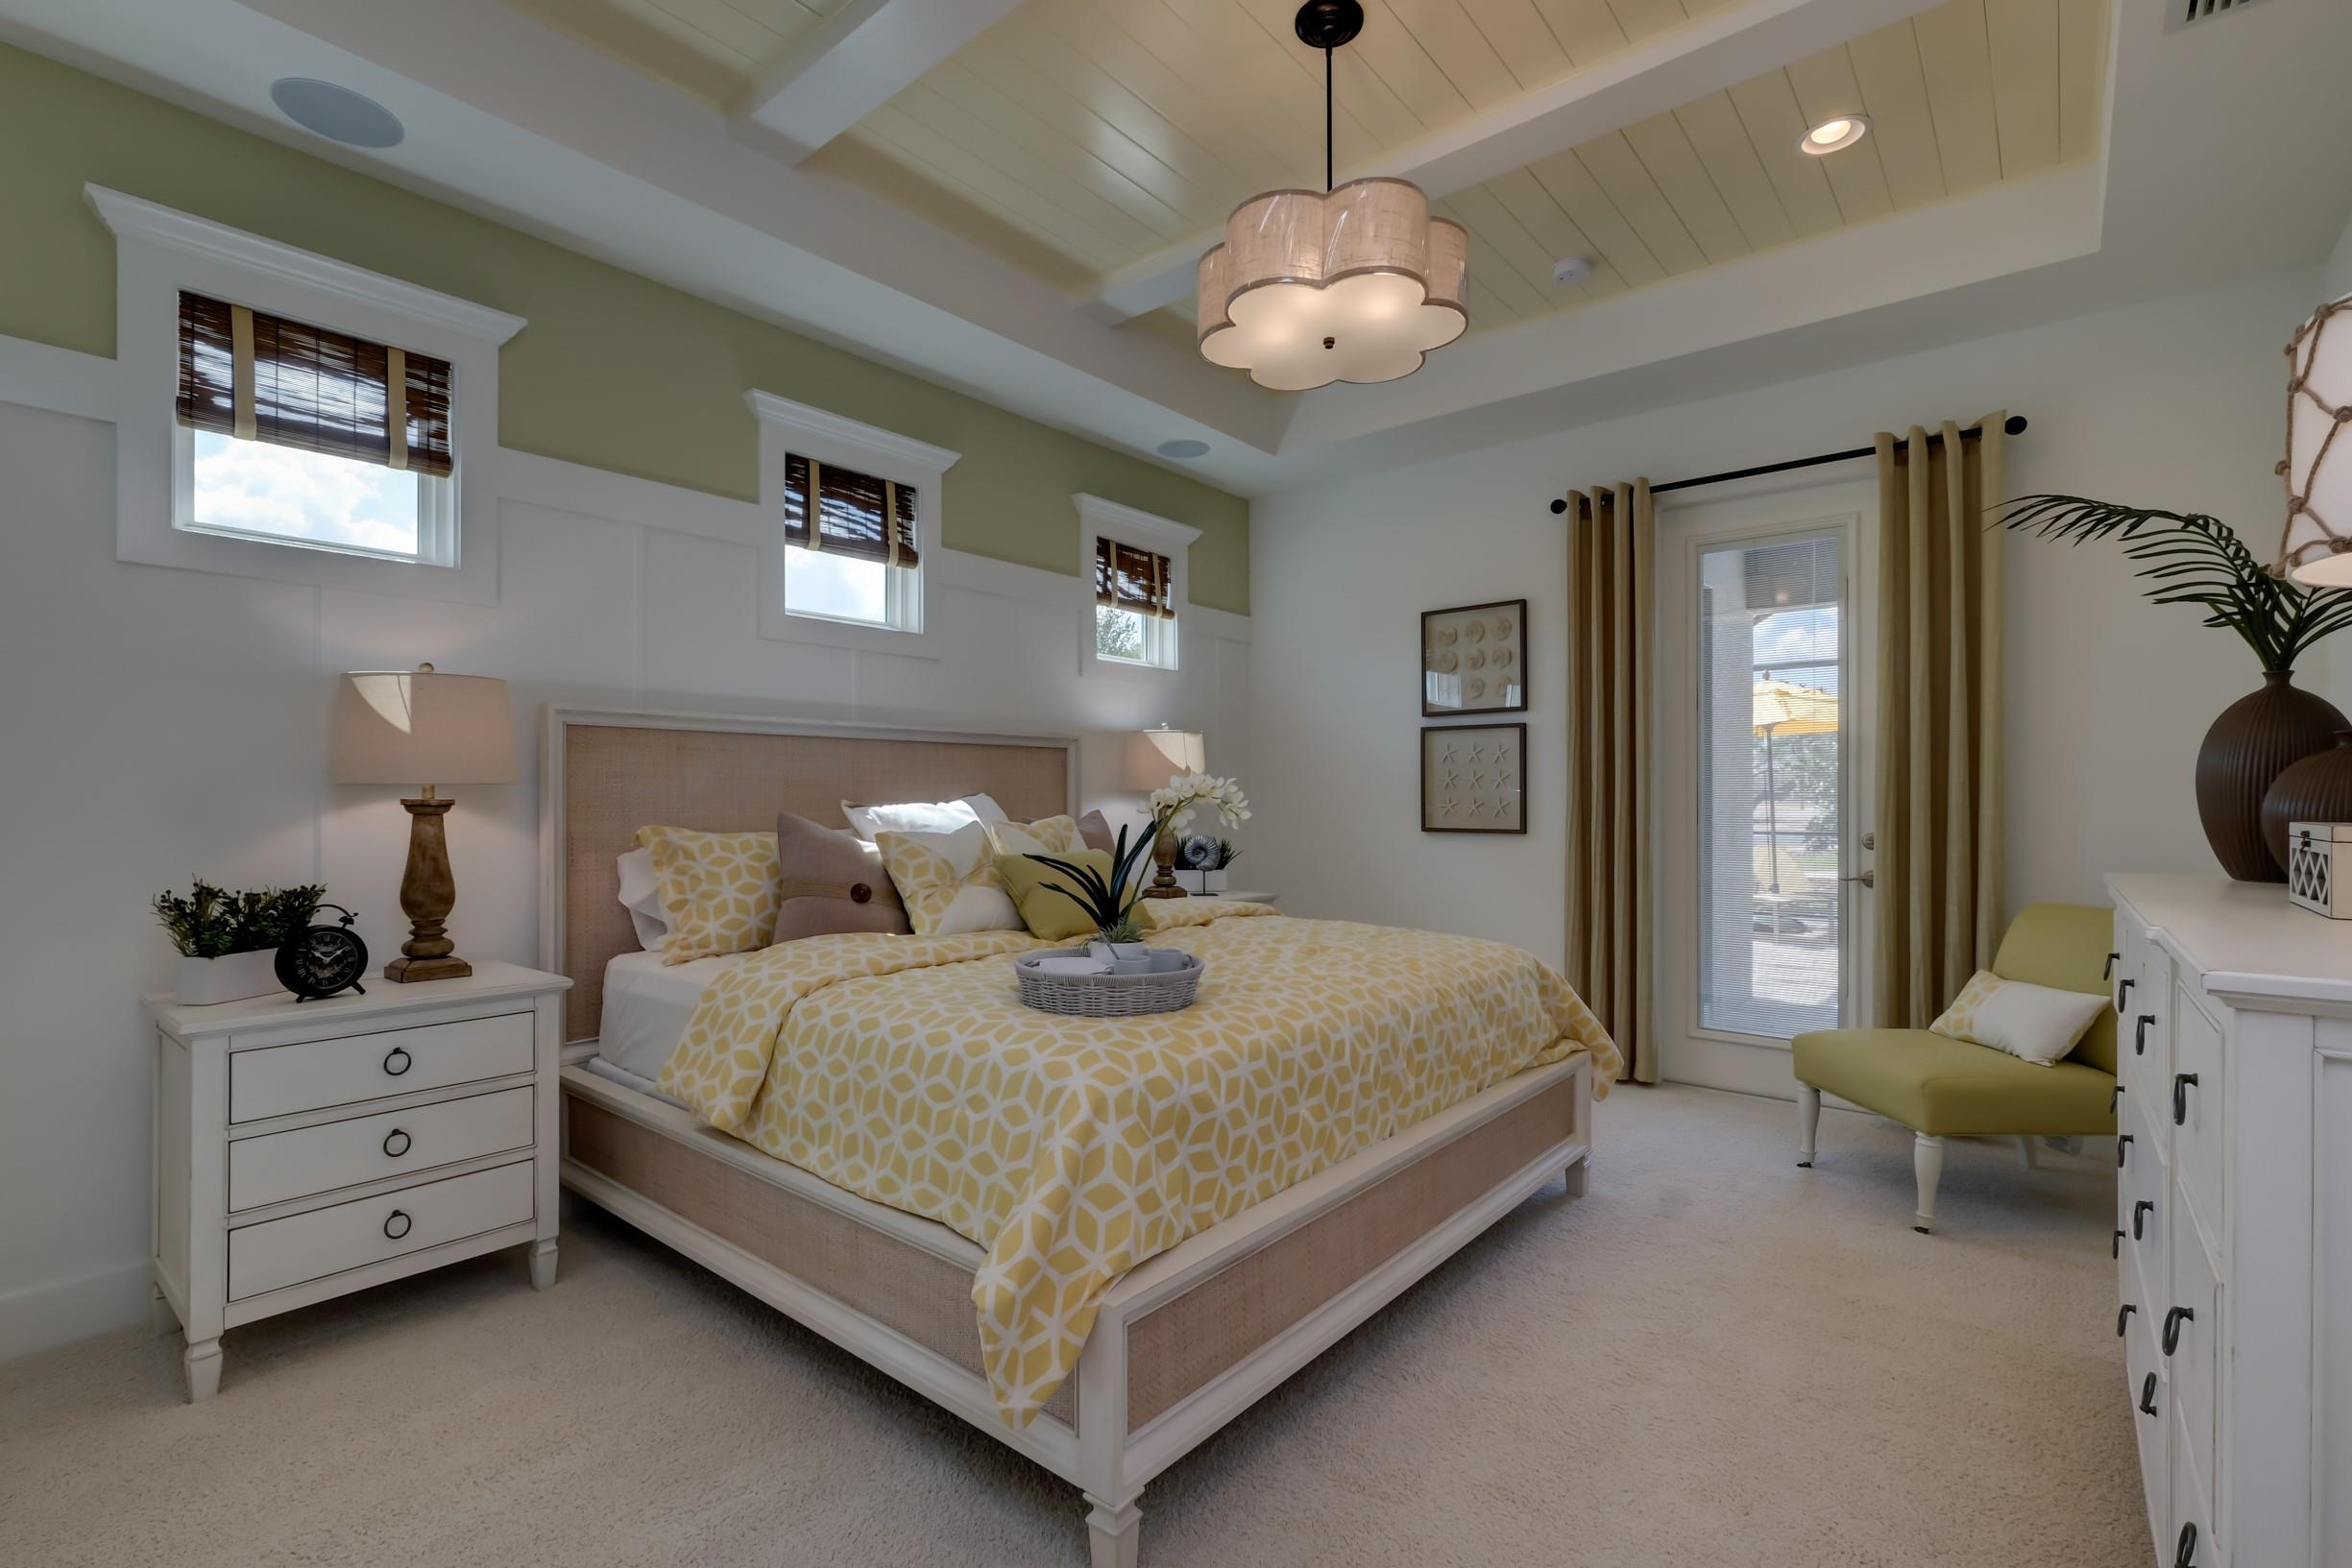 Bedroom featured in the Grand St Kitts By Medallion Home in Orlando, FL